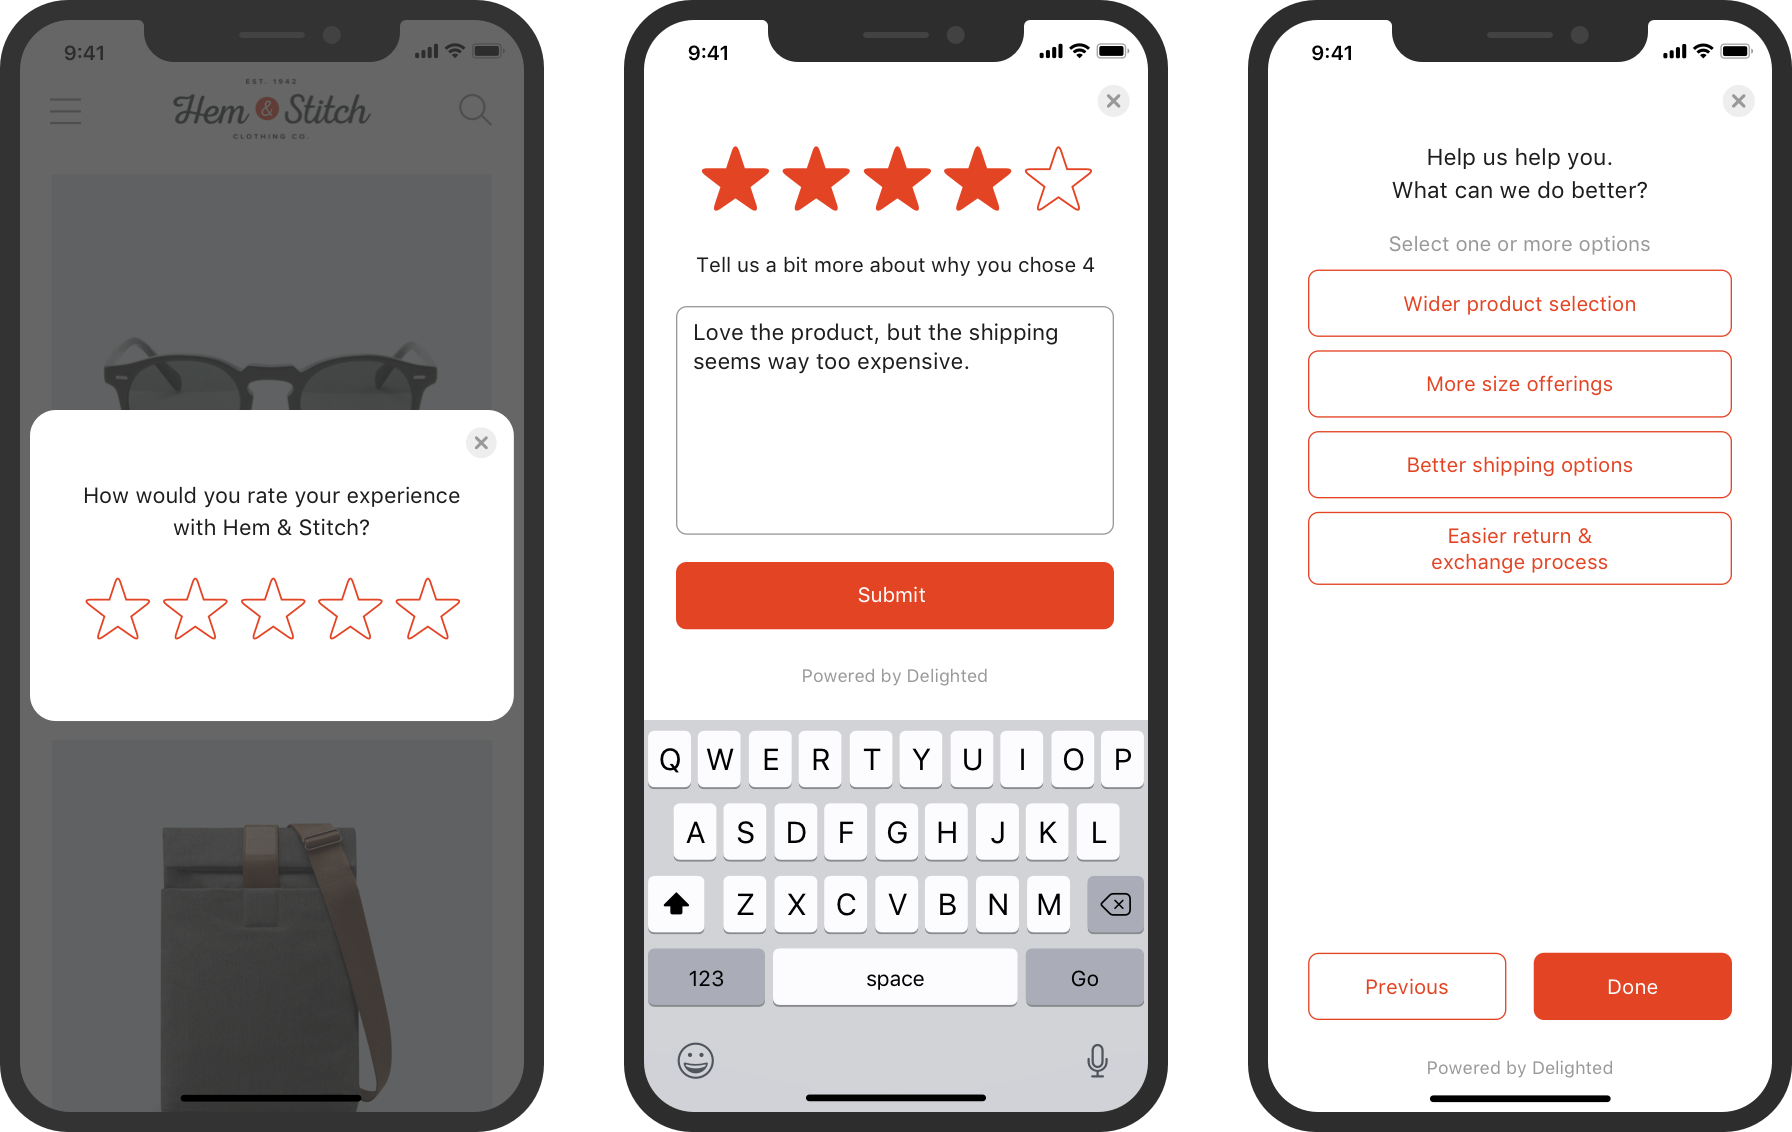 in-app survey with 5-star rating scale and follow-up questions